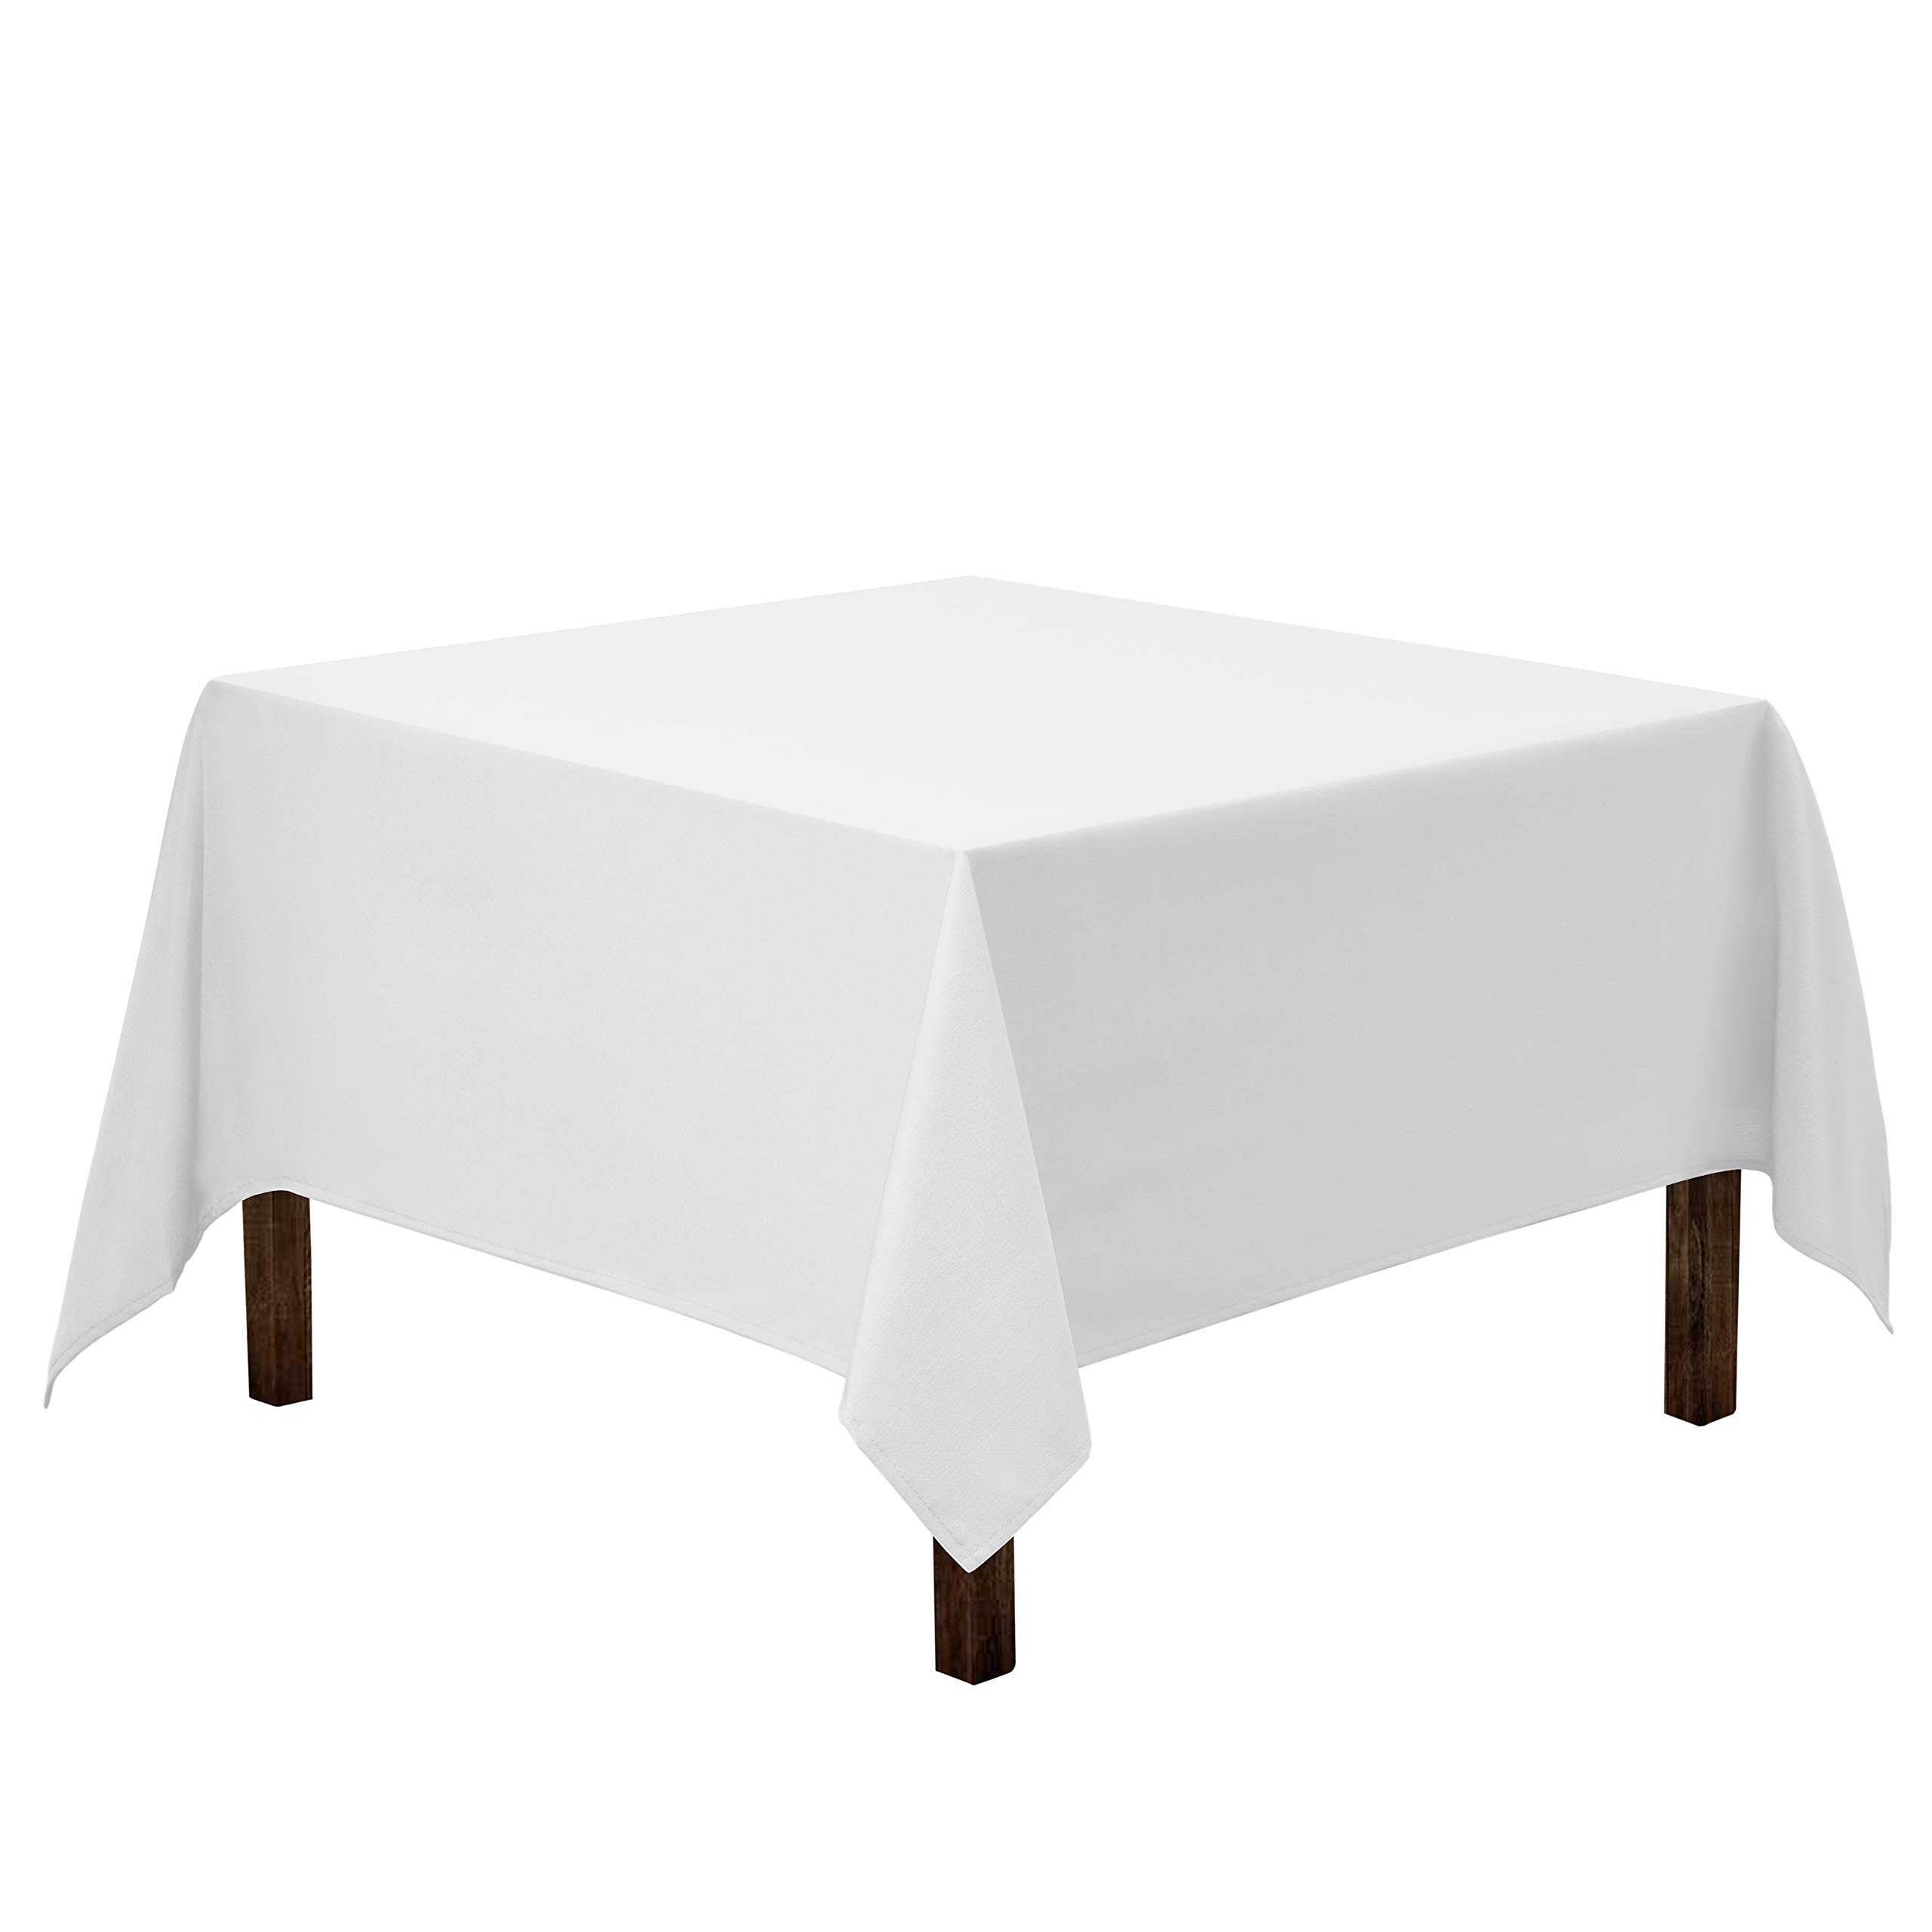 Gee Di Moda Square Tablecloth - 70 x 70 Inch - White Square Table Cloth for Square or Round Tables in Washable Polyester - Great for Buffet Table, Parties, Holiday Dinner, Wedding & More by Gee Di Moda